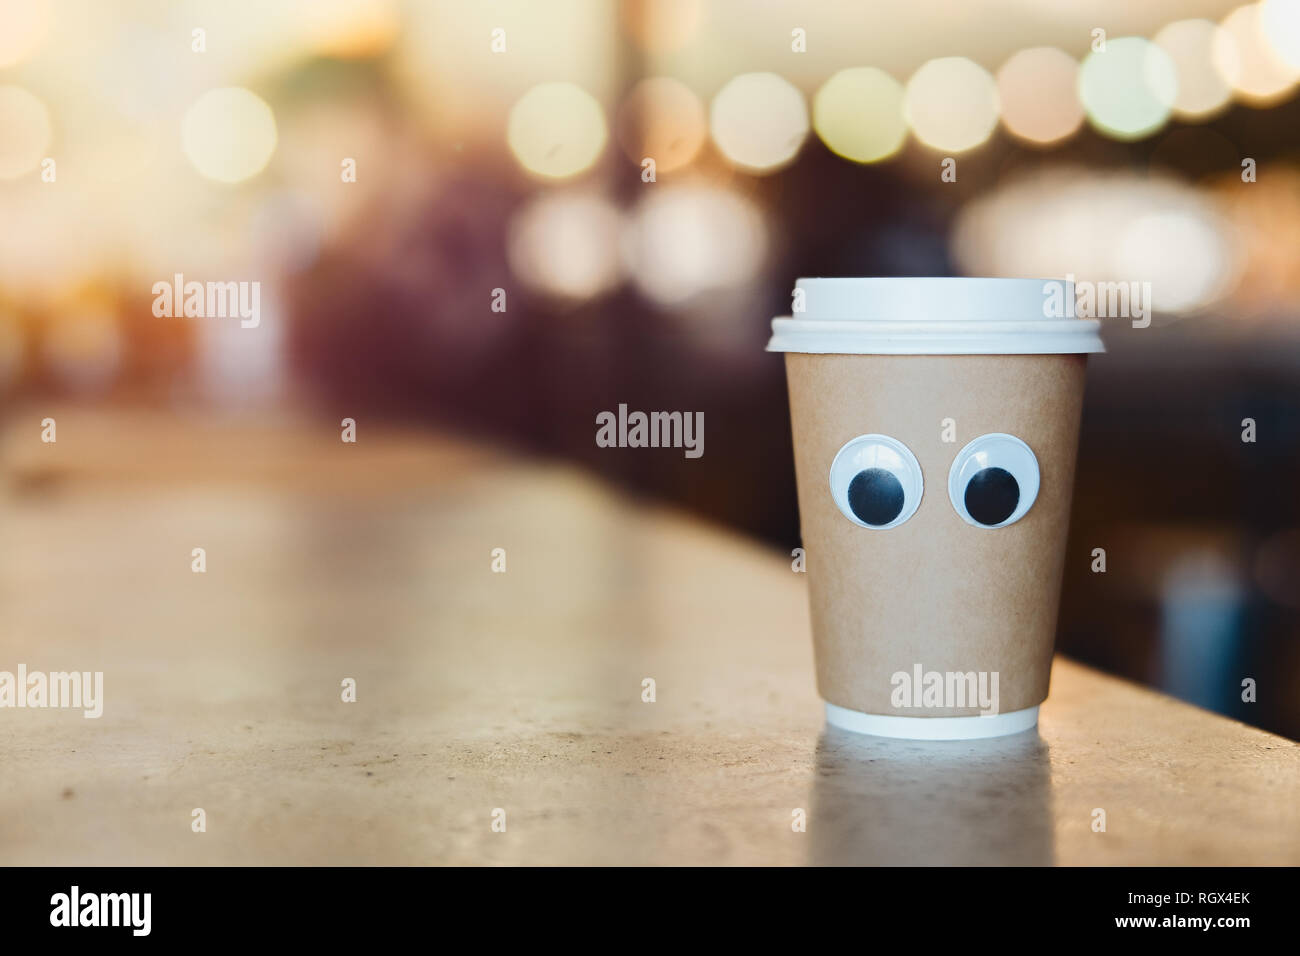 Coffee takeaway cup with cartoon eyes in cafe. Concept of hospitable cafe and good service. Cute and nice character. Stock Photo